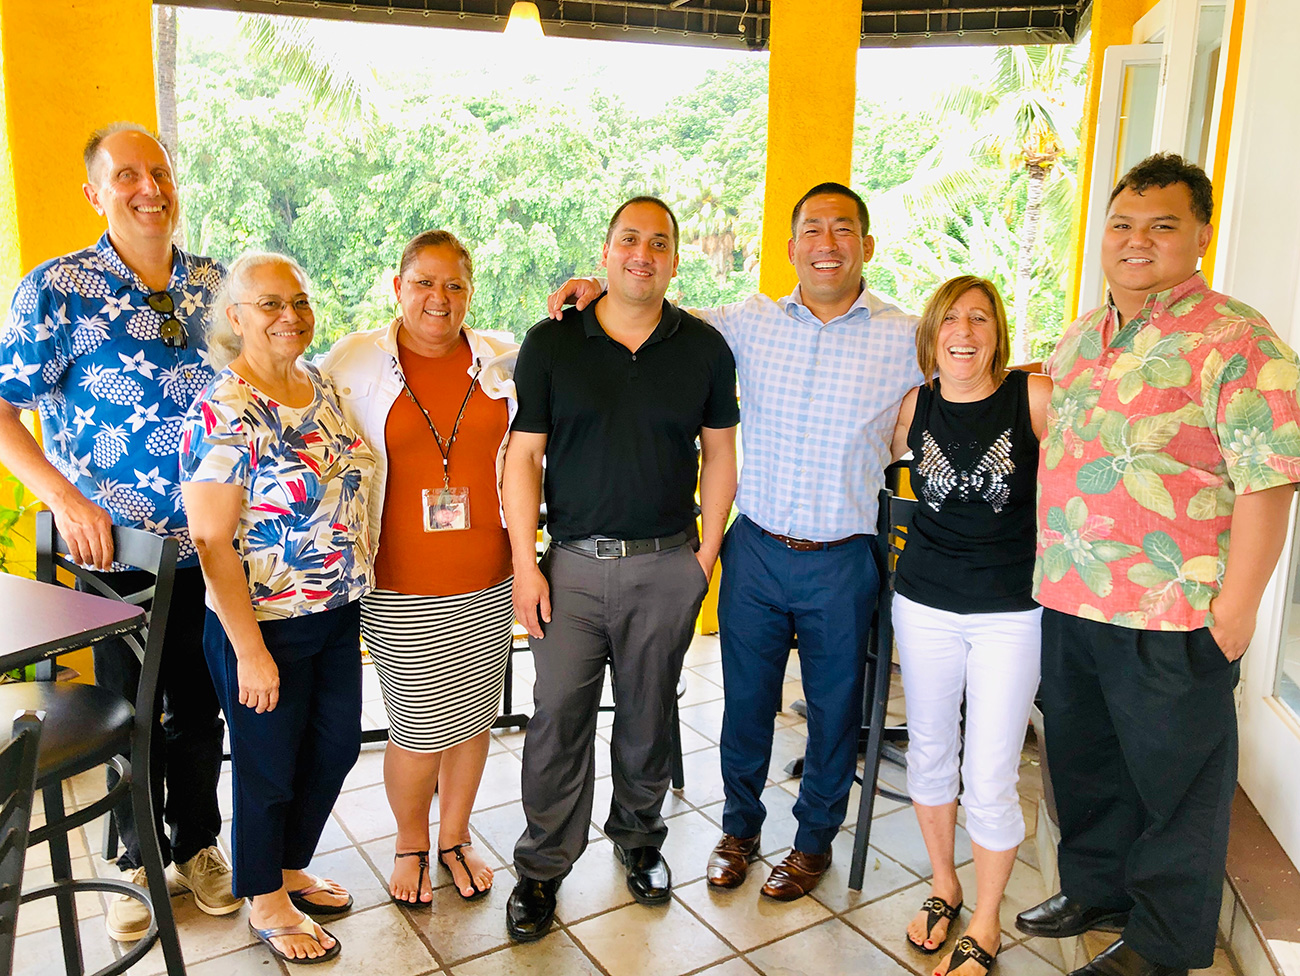 (Left to Right): Lee Steinmetz, Fran Becker, Nani Sadora, Ka'aina Hull, Kauai Mayor Derek Kawakami, Bev Brody, and Mike Dahilig.